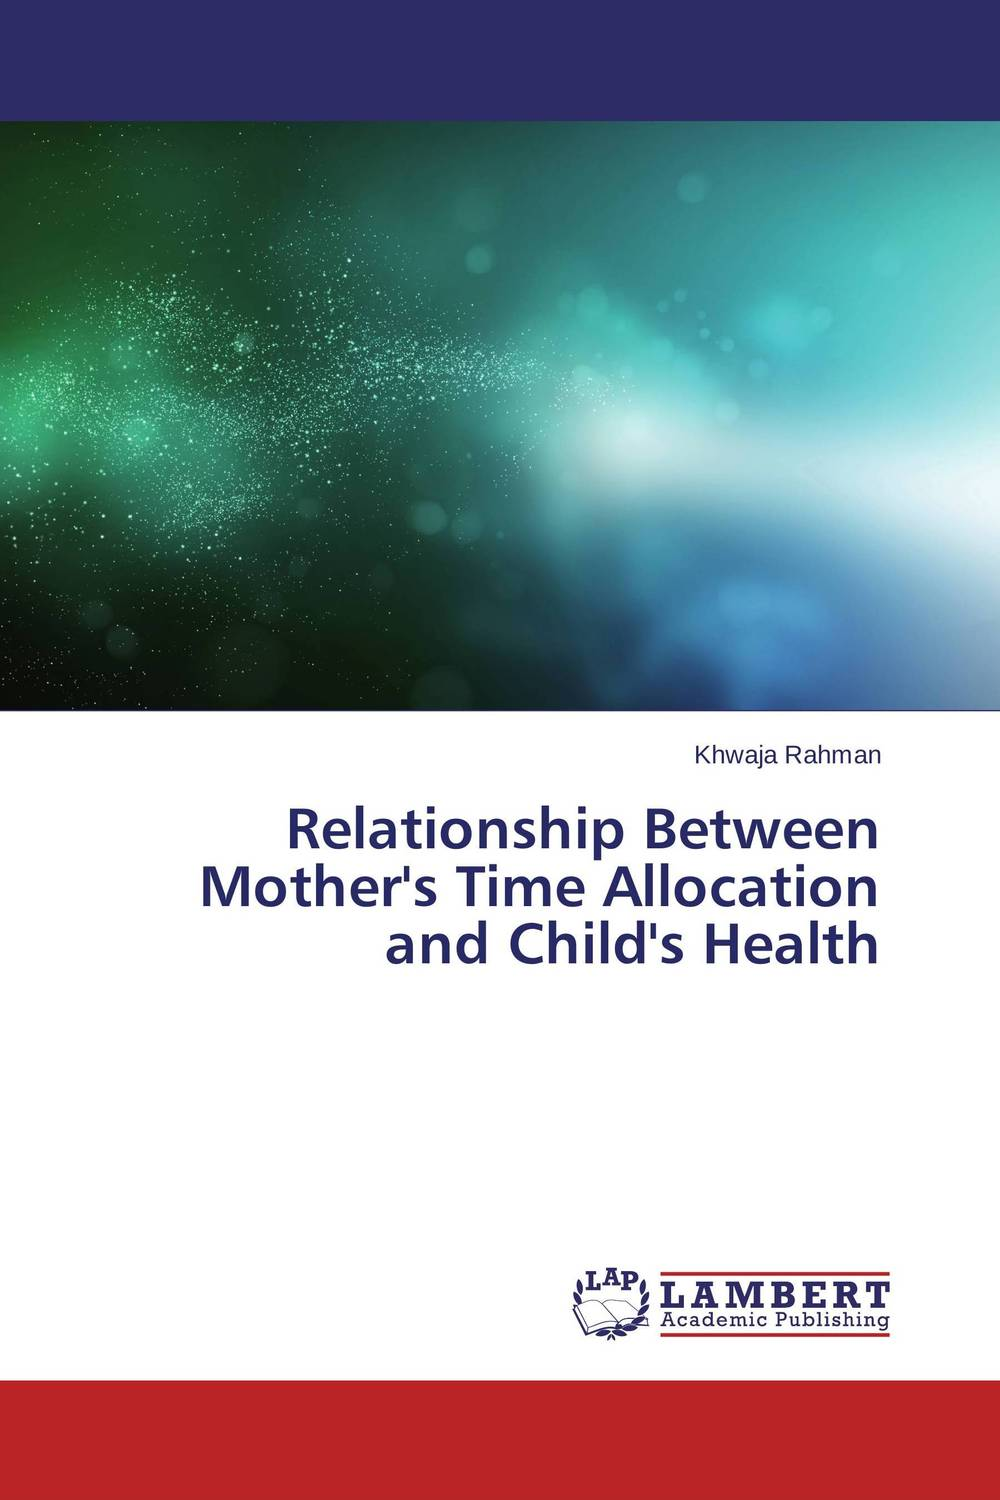 Фото Relationship Between Mother's Time Allocation and Child's Health finance and investments